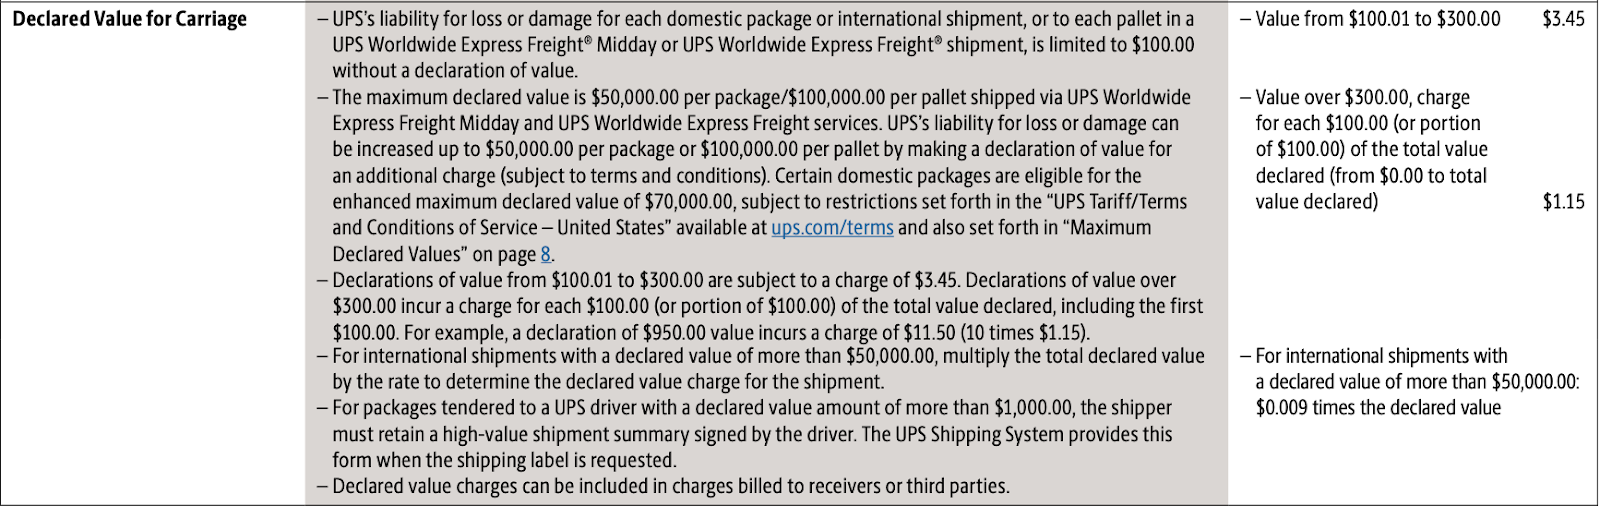 Declared Value for Carriage Shipping Insurance